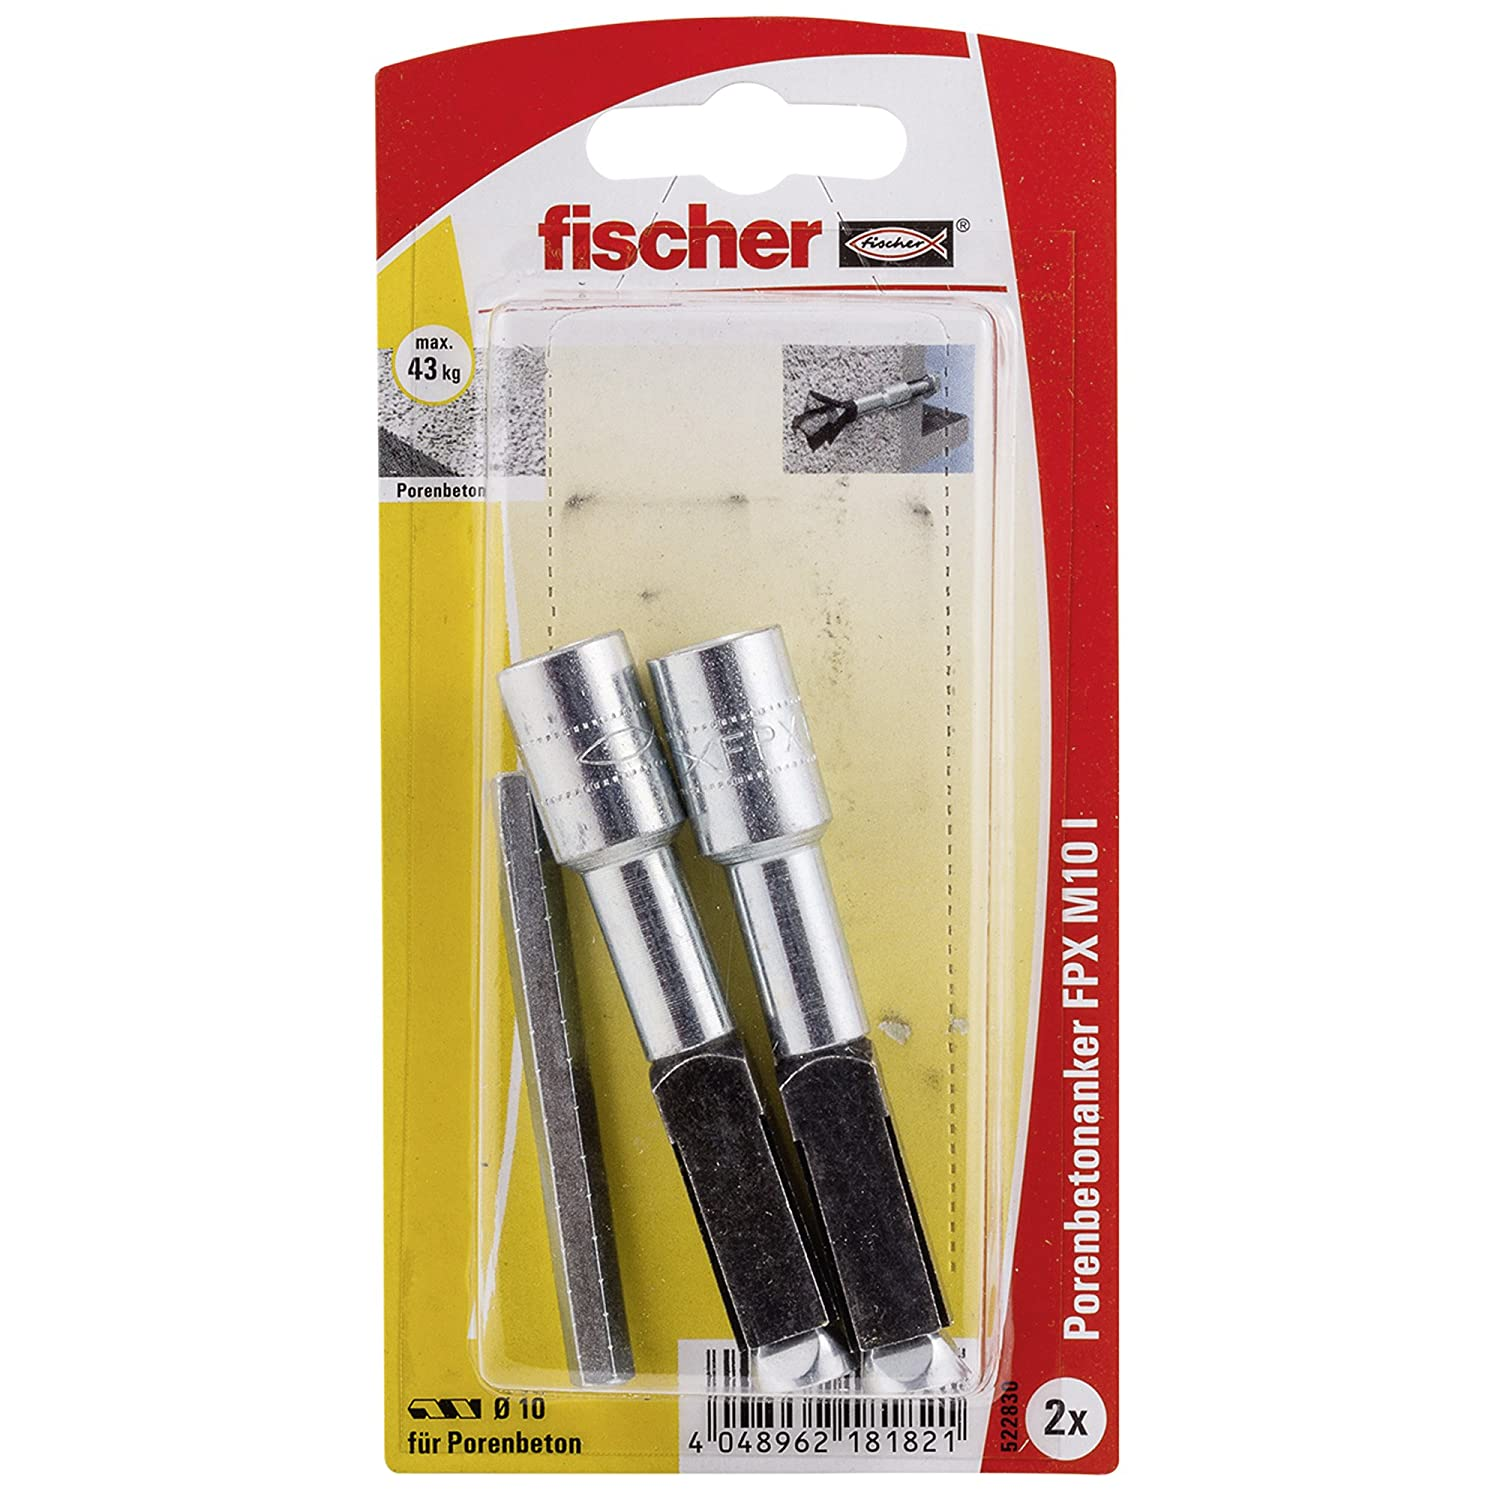 Fischer 522830 FPX-I M10 Cellular Concrete Anchor - Multi-Colour (2-Piece)